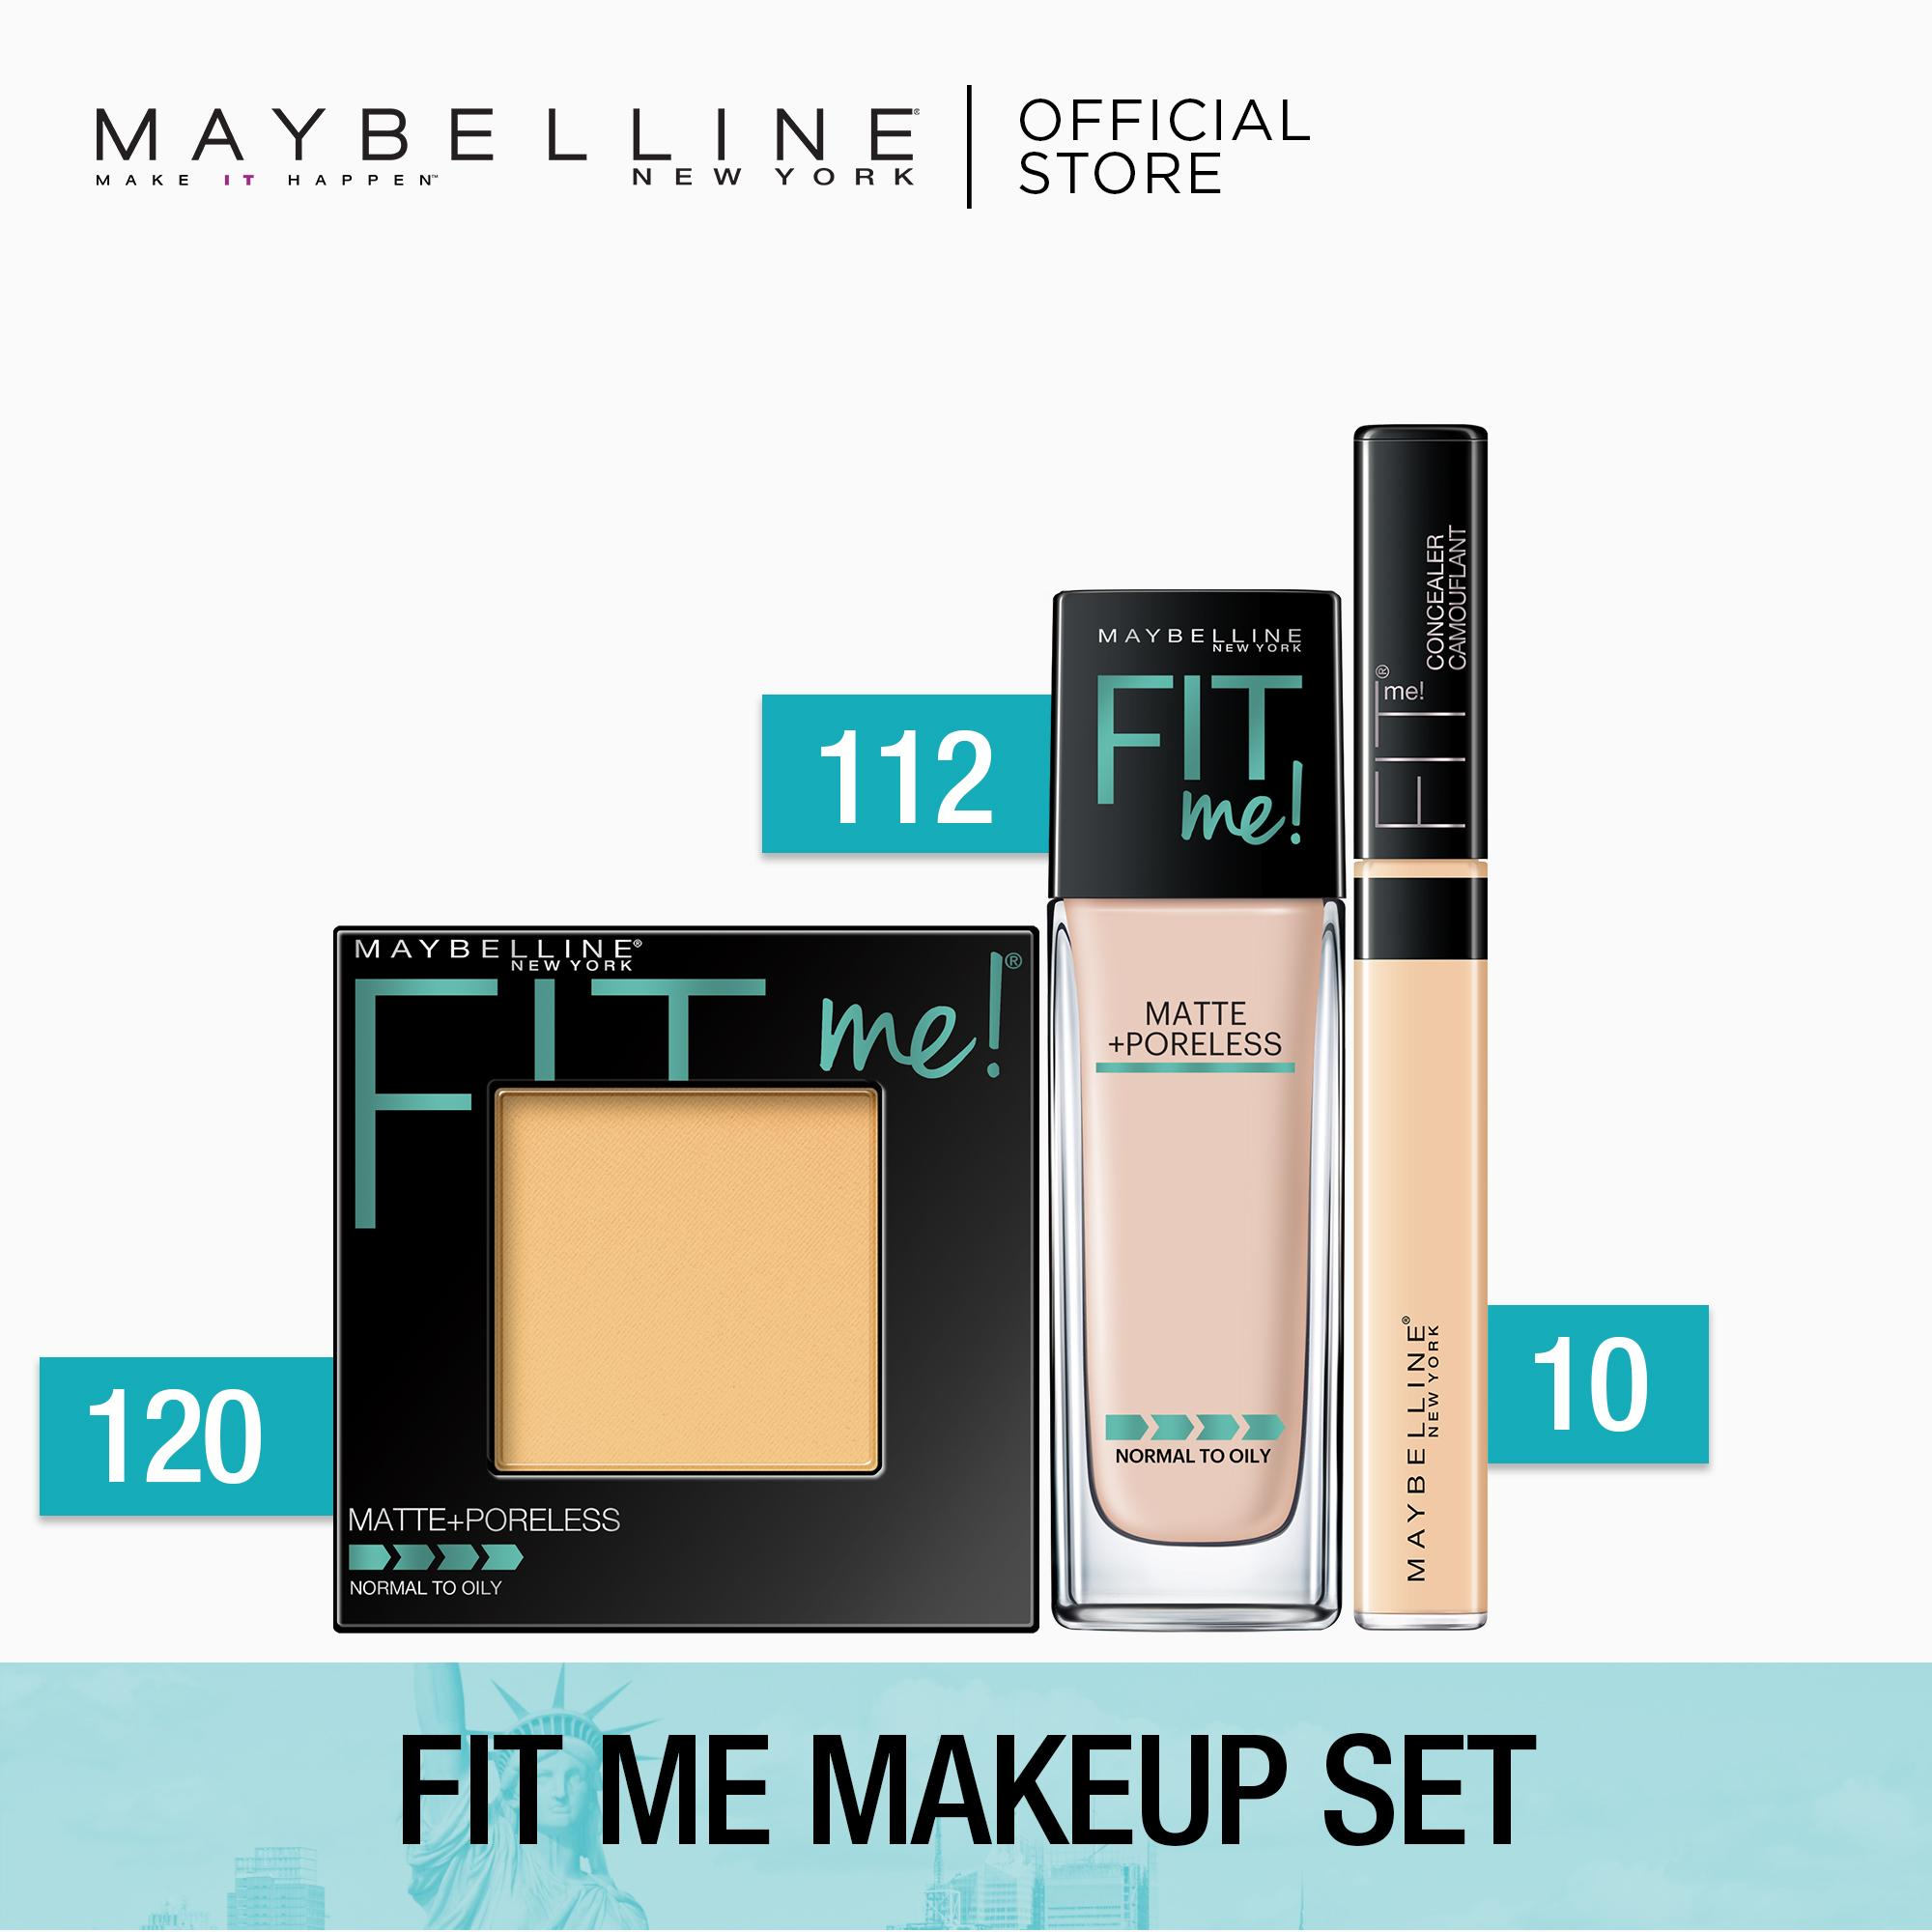 Fit Me Makeup Set: Fit Me Liquid Foundation 112 Natural Ivory + Fit Me Powder 120 Classic Ivory + Fit Me Concealer 10 Light by Maybelline Philippines